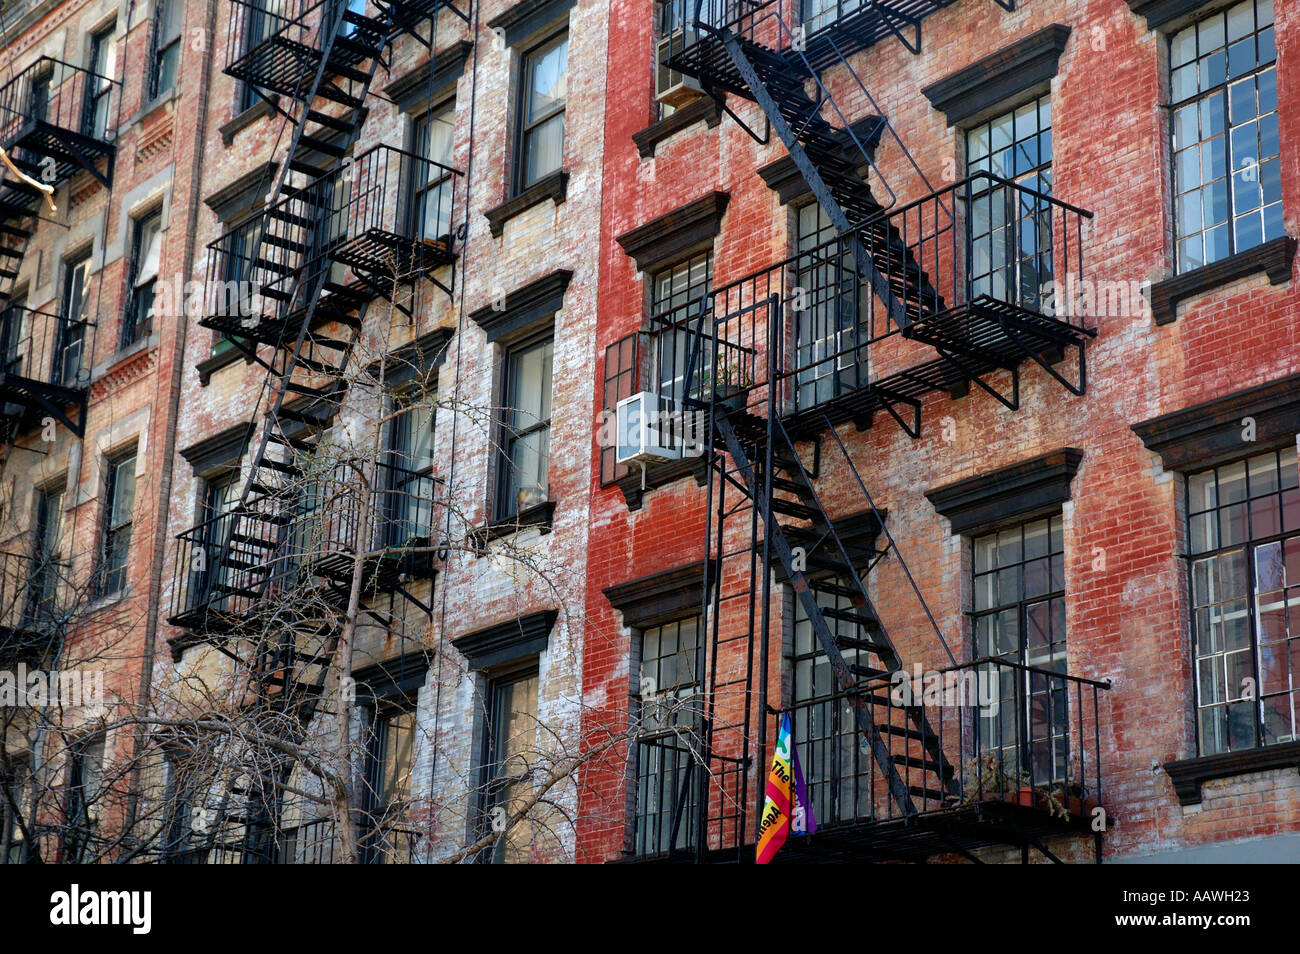 new york apartments buildings. New York apartment buildings in Soho are of Manhatten with typical exterior  fire escape ladders